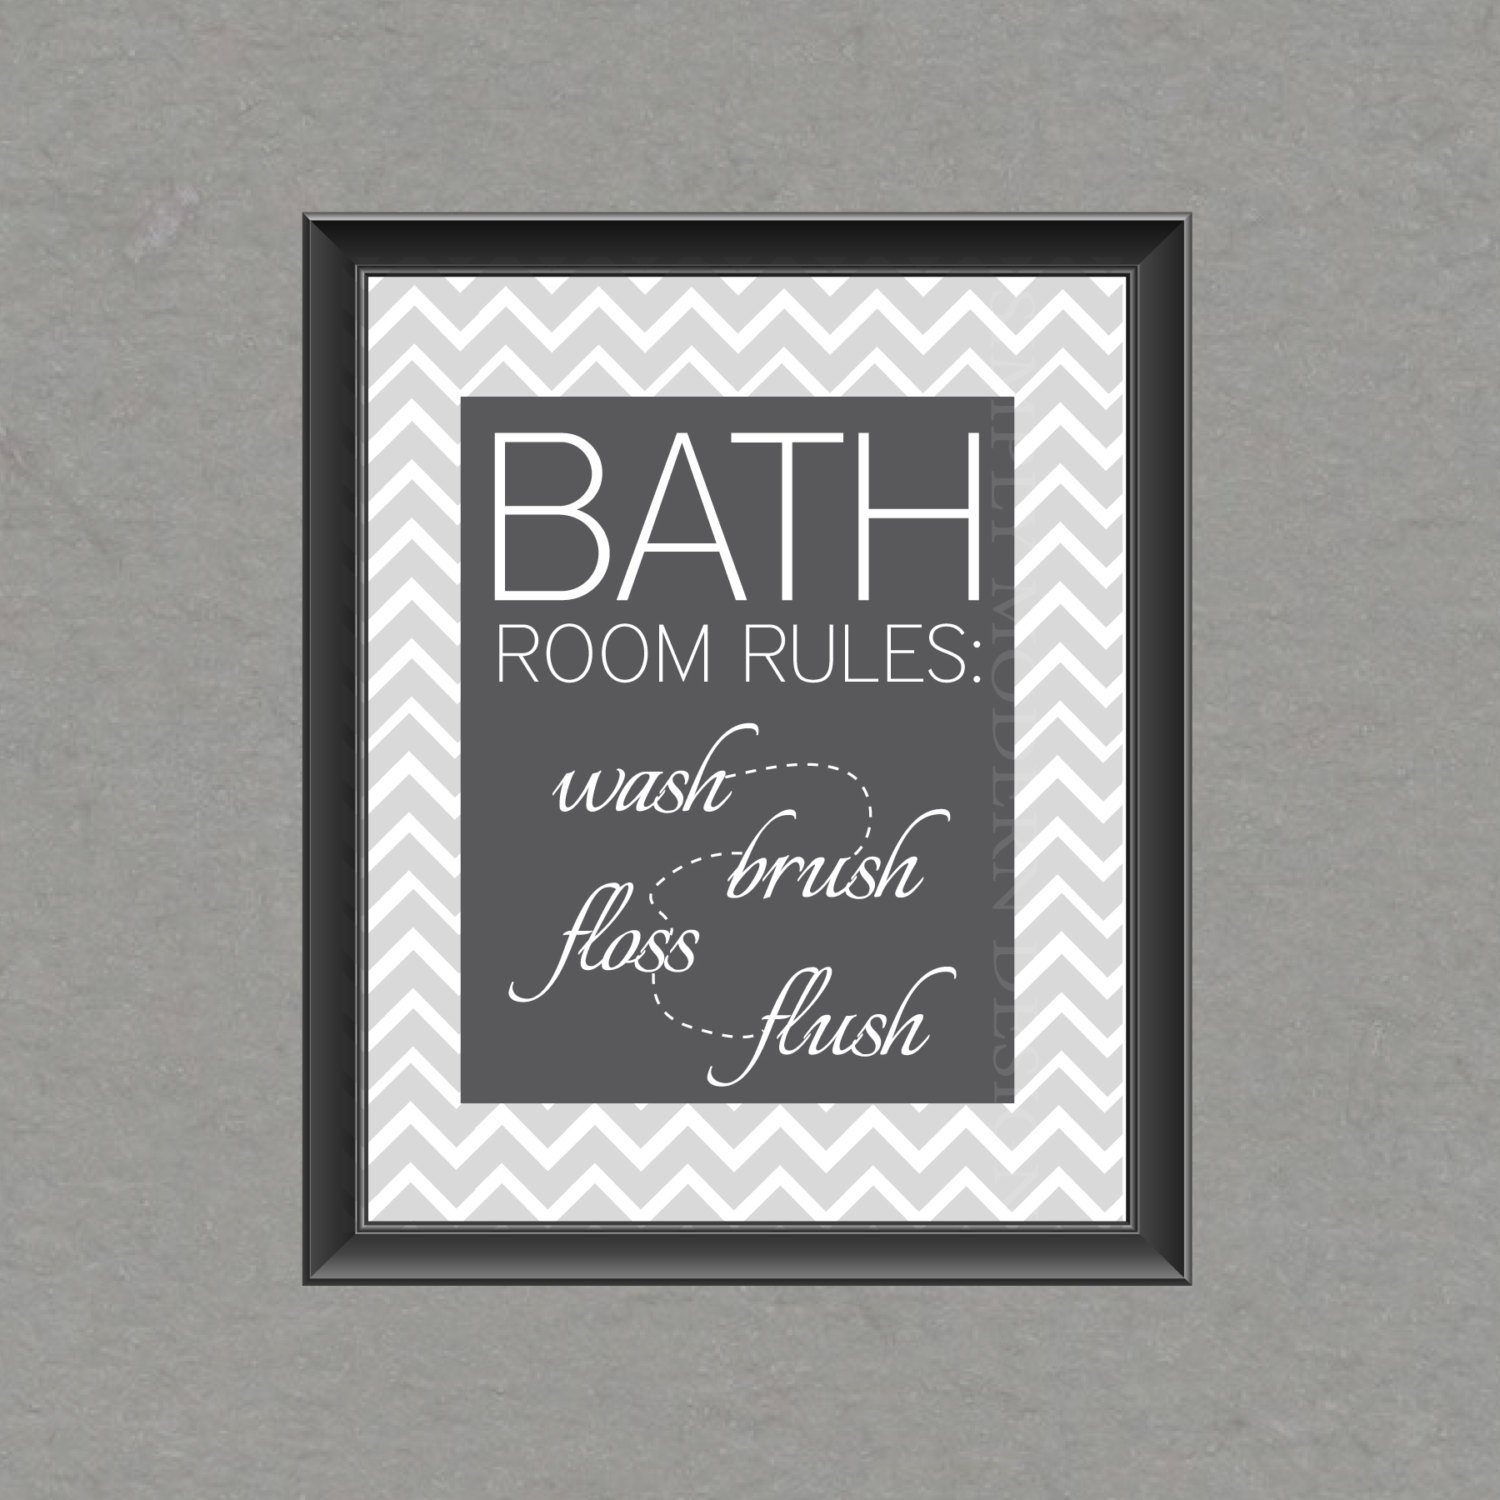 5 Best Images Of Free Bathroom Printable Wall Art Chevron, Bathroom - Free Printable Wall Art For Bathroom